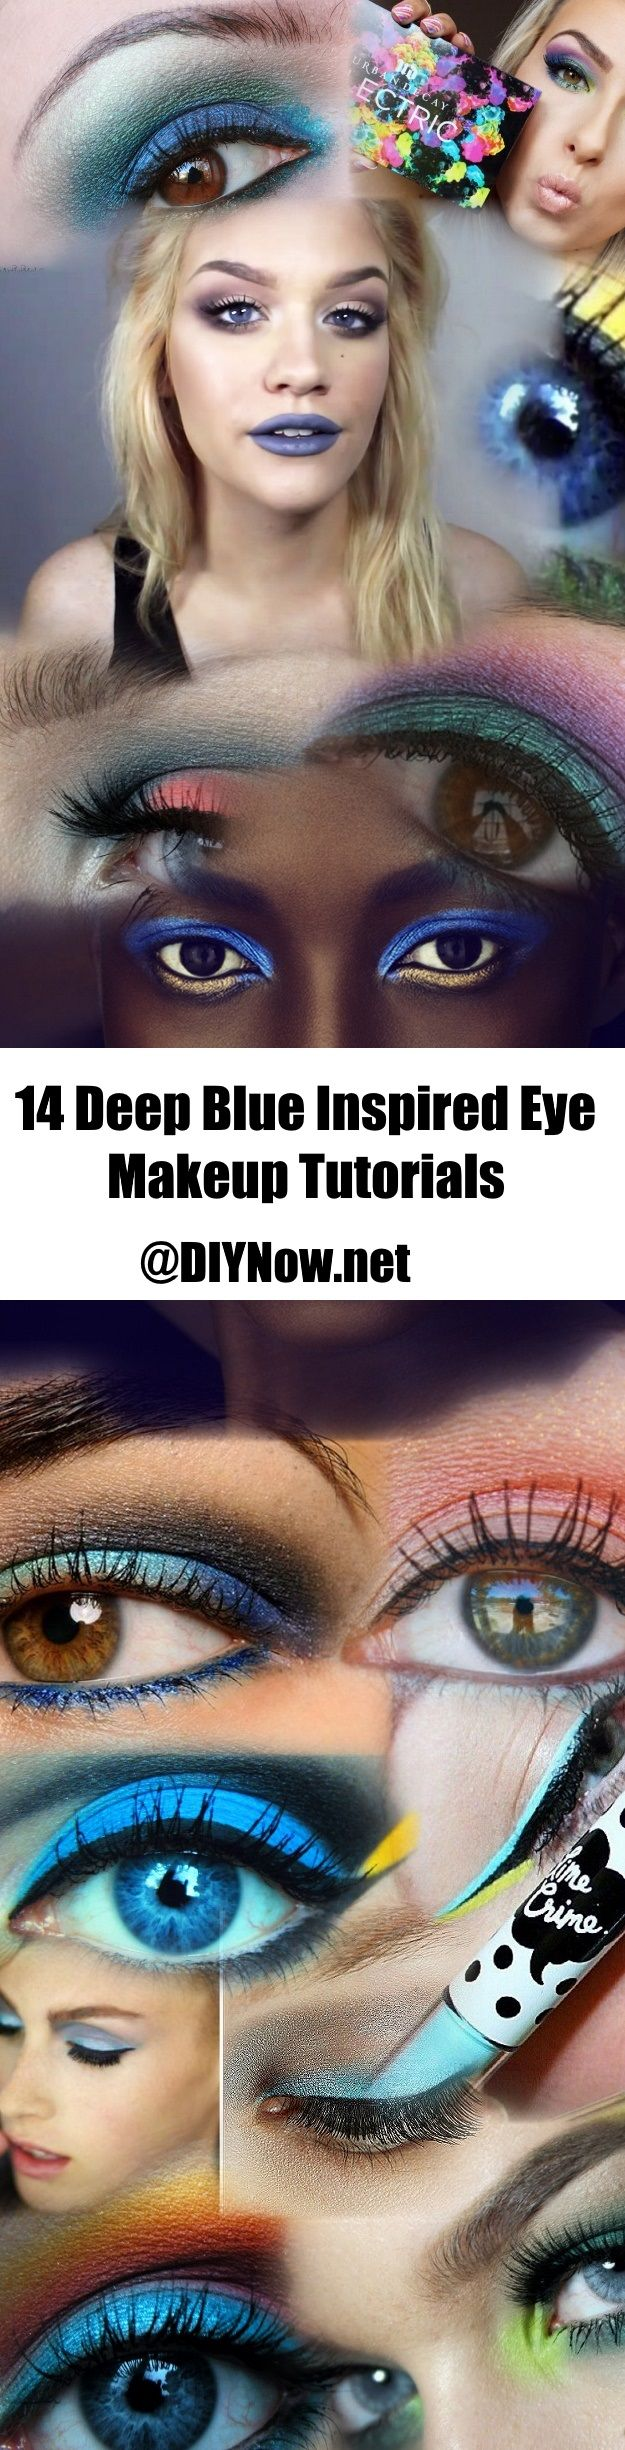 14 Deep Blue Inspired Eye Makeup Tutorials